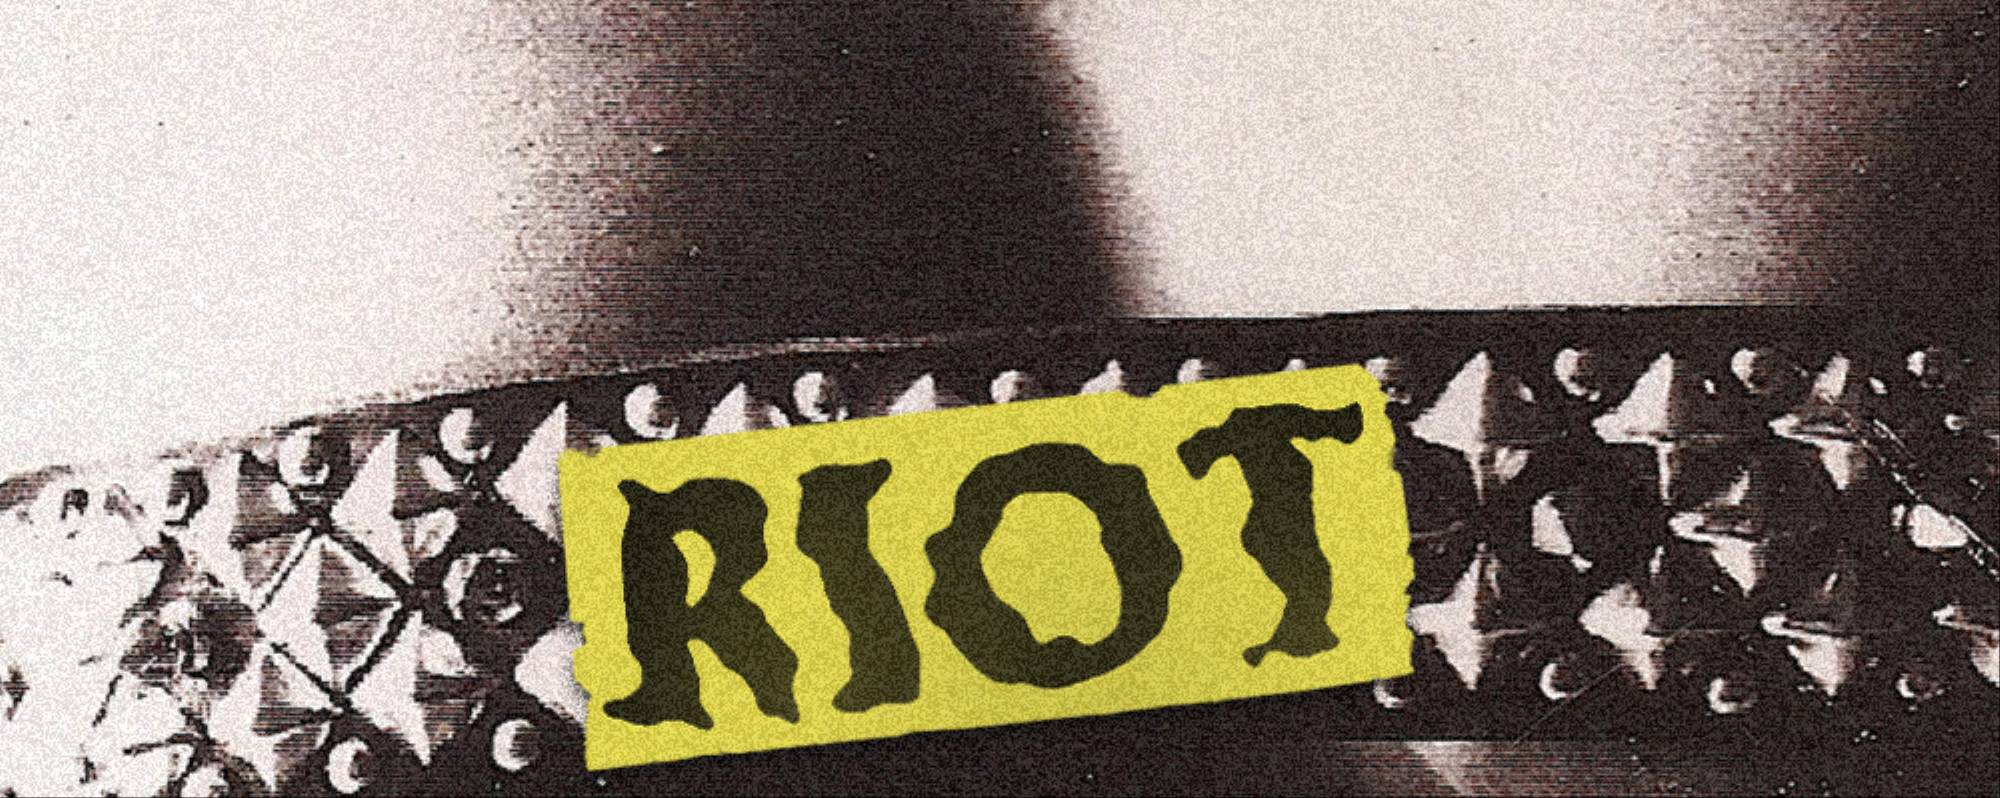 Alternatives to Alternatives: the Black Grrrls Riot Ignored